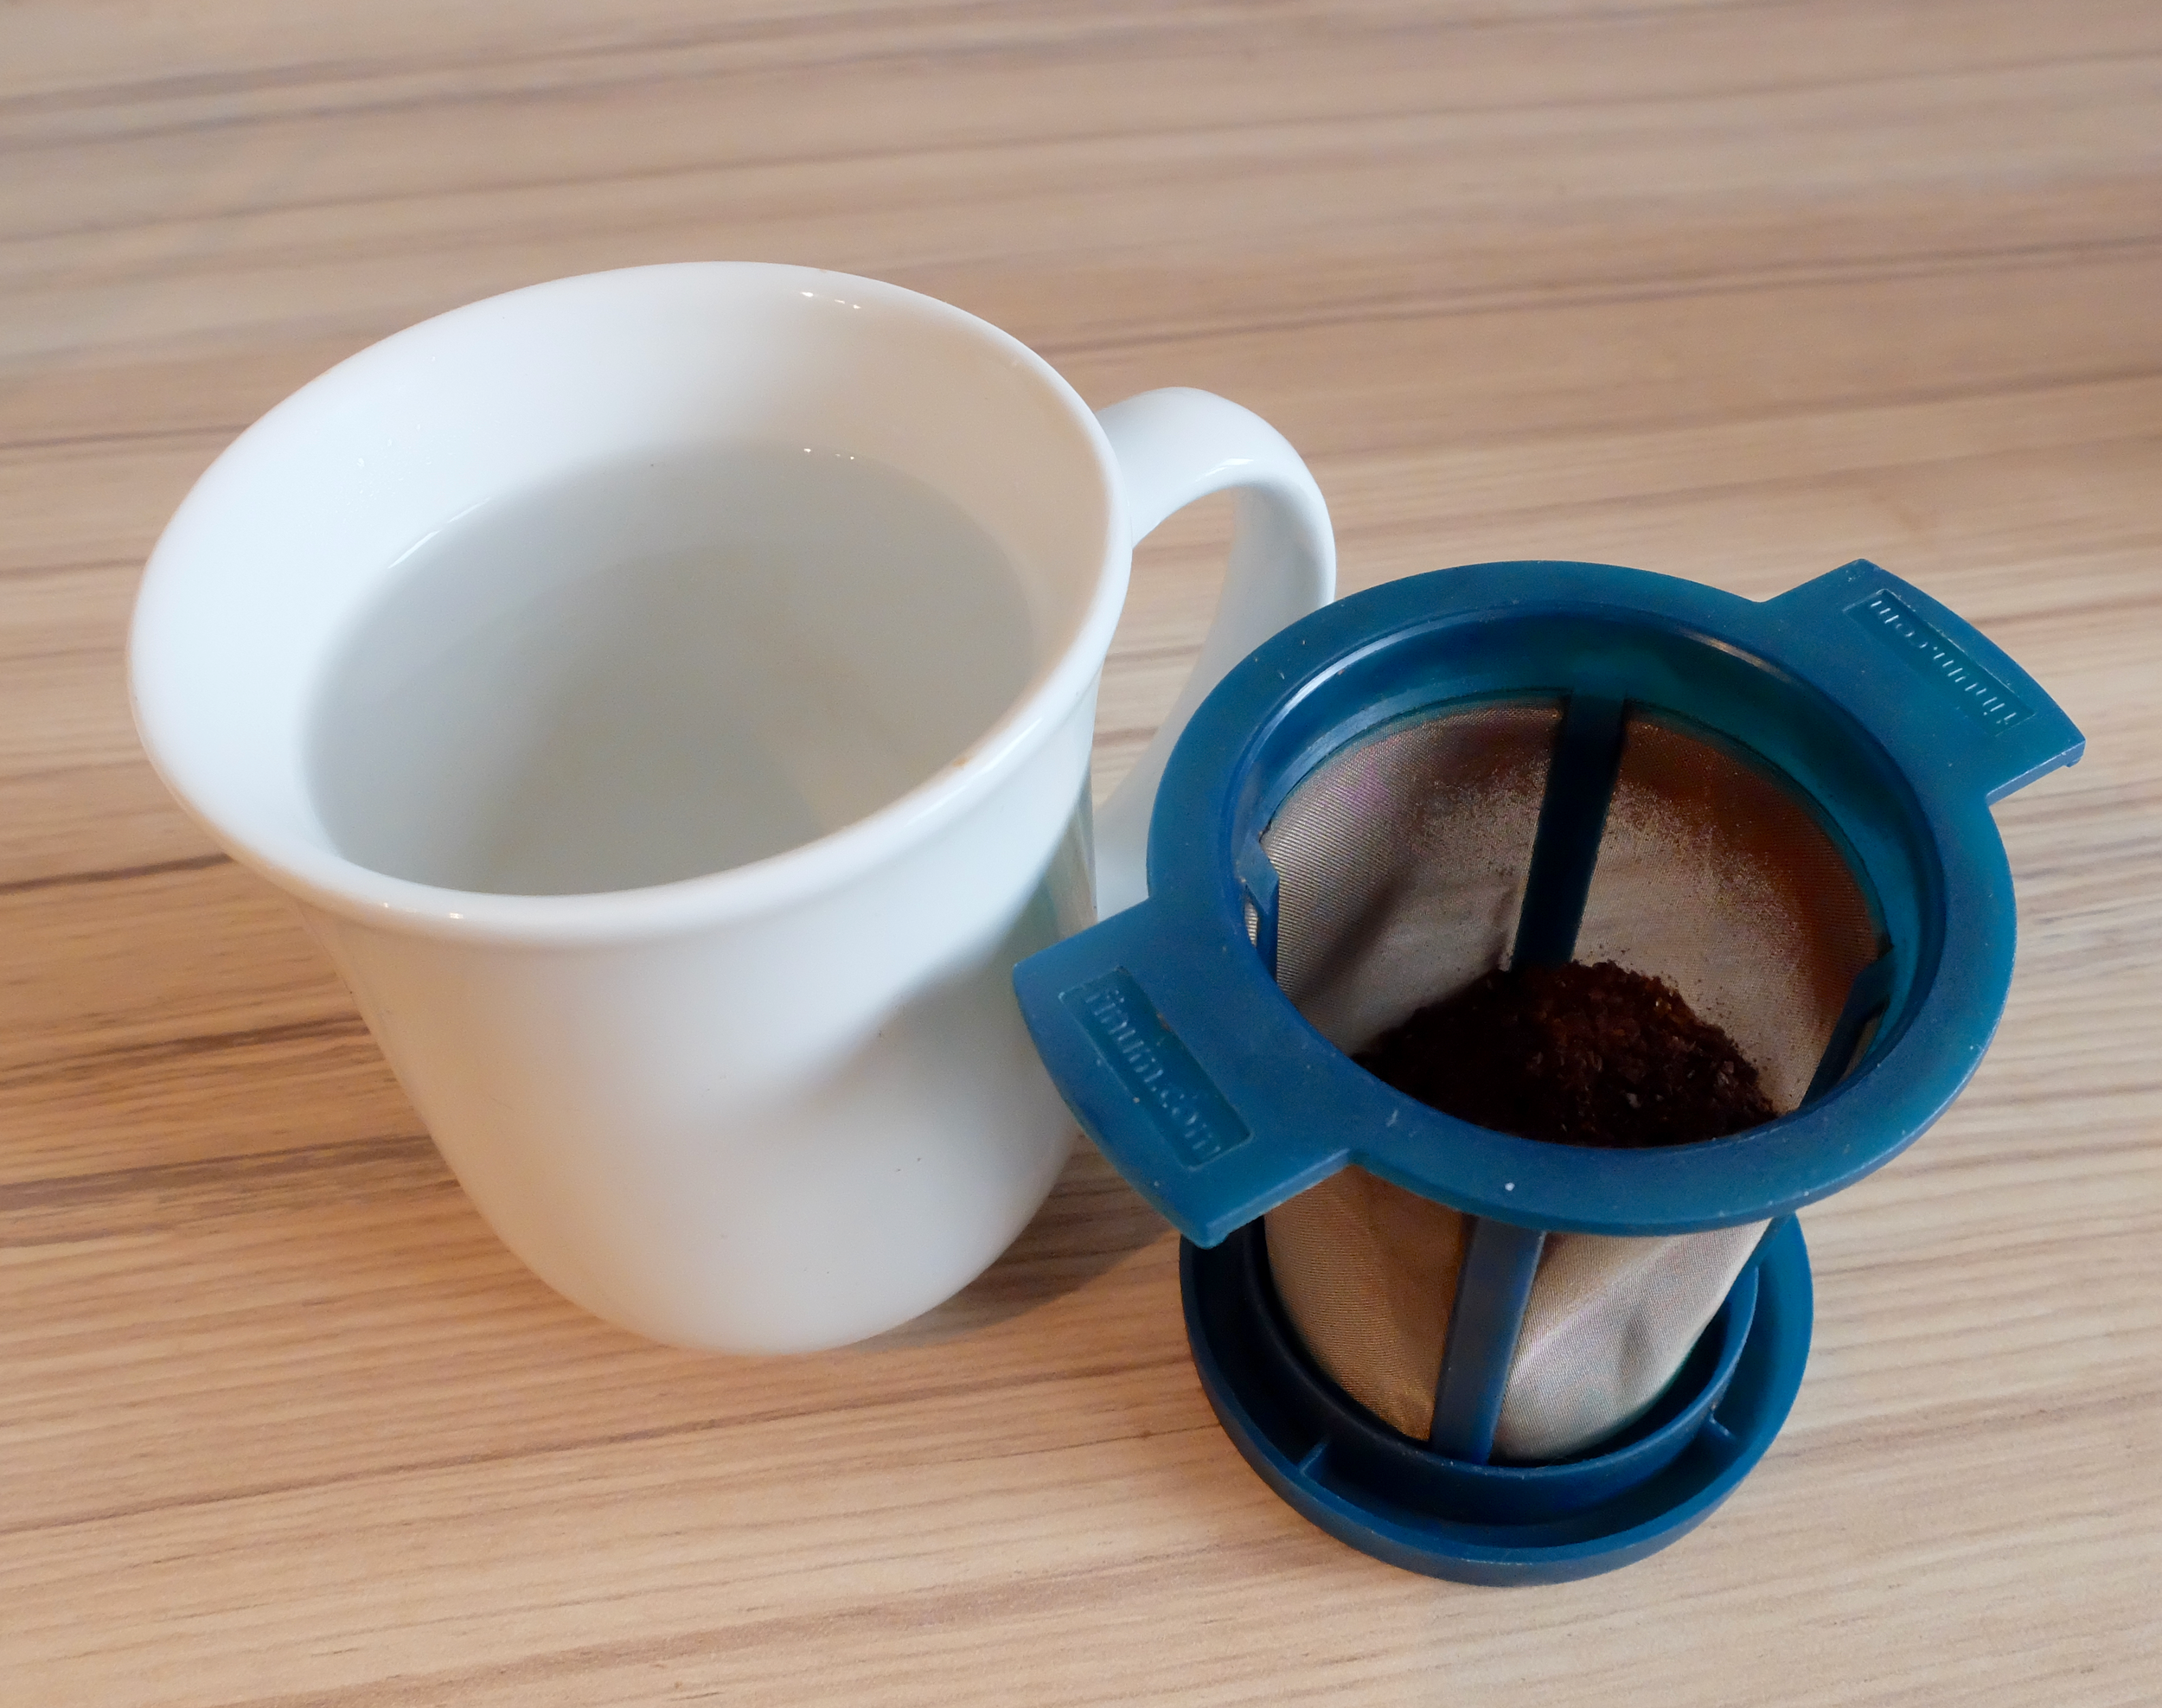 2 - Pour the boiled water into your mug, and allow it to cool to around 95°C (203°F). While the water cools, put the ground coffee into the brew basket.